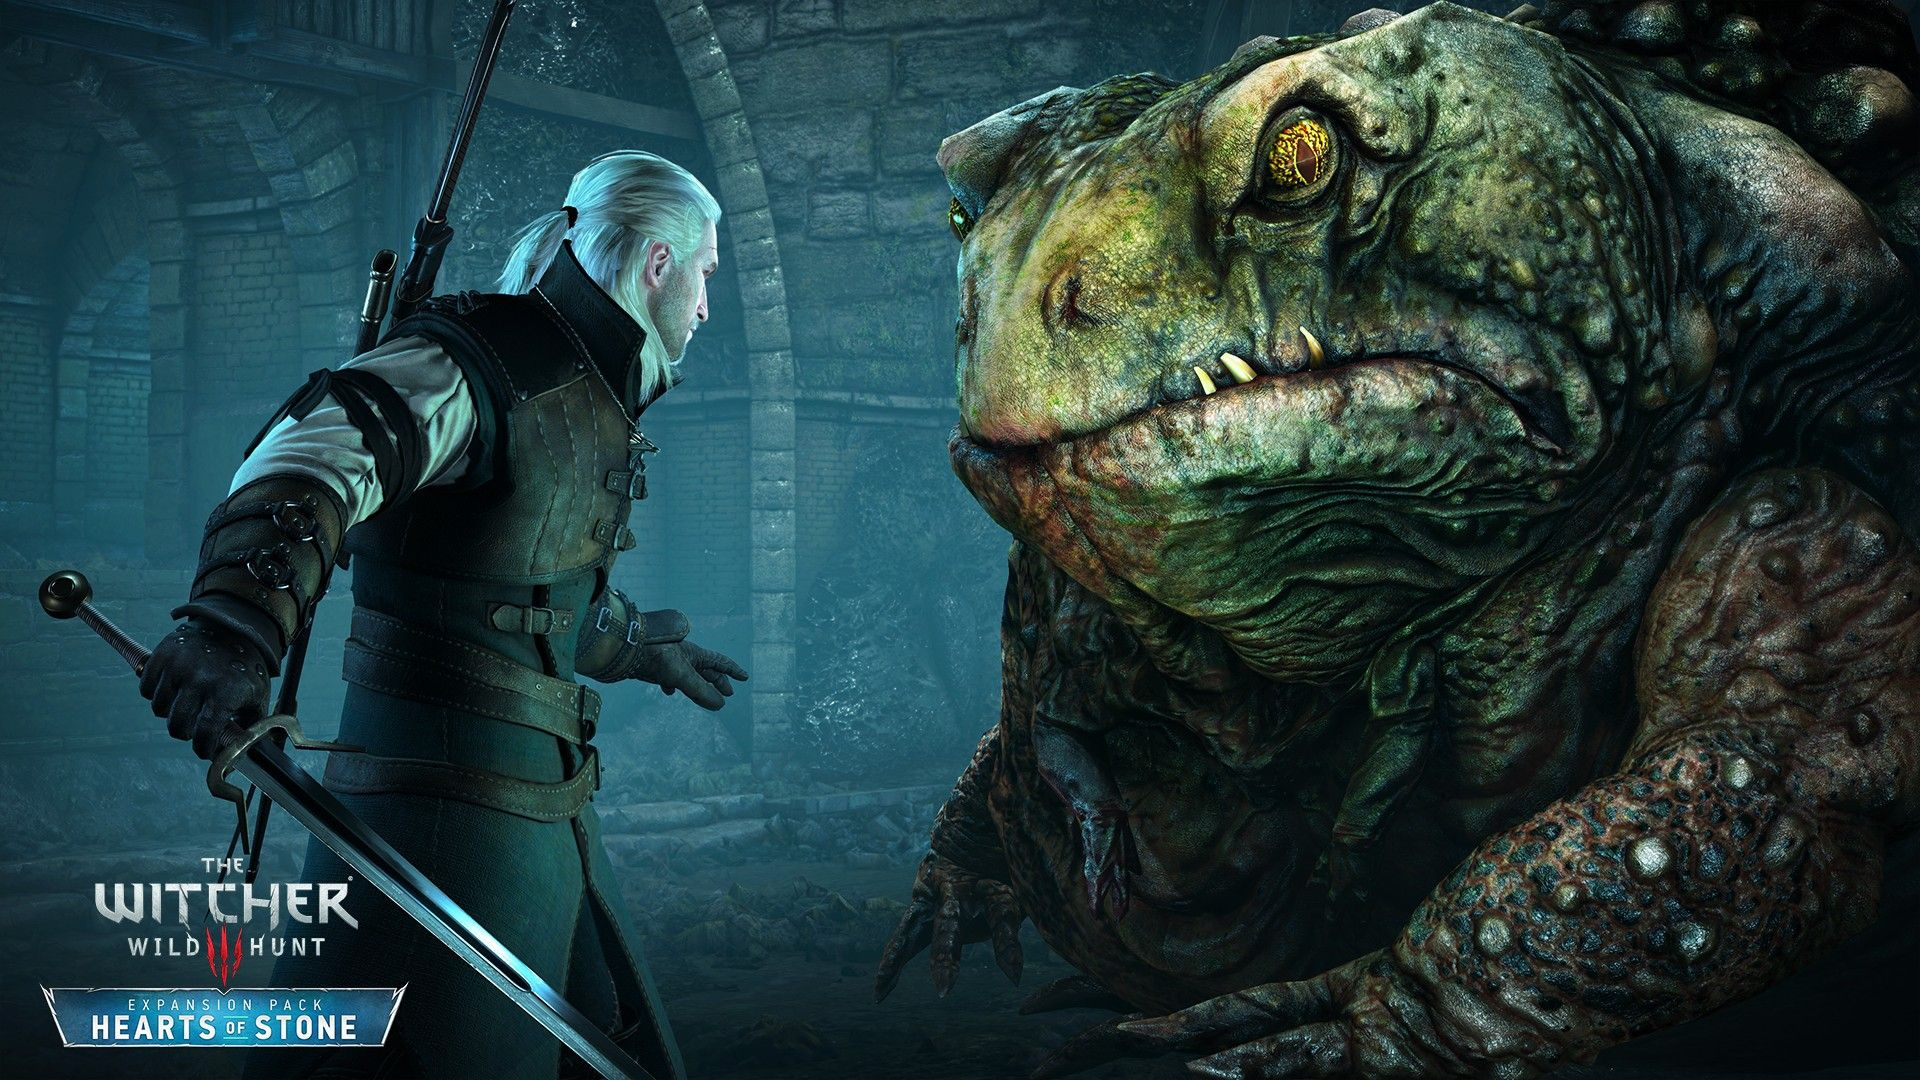 Wallpaper The Witcher 3 Hearts Of Stone Monster Frog Battle